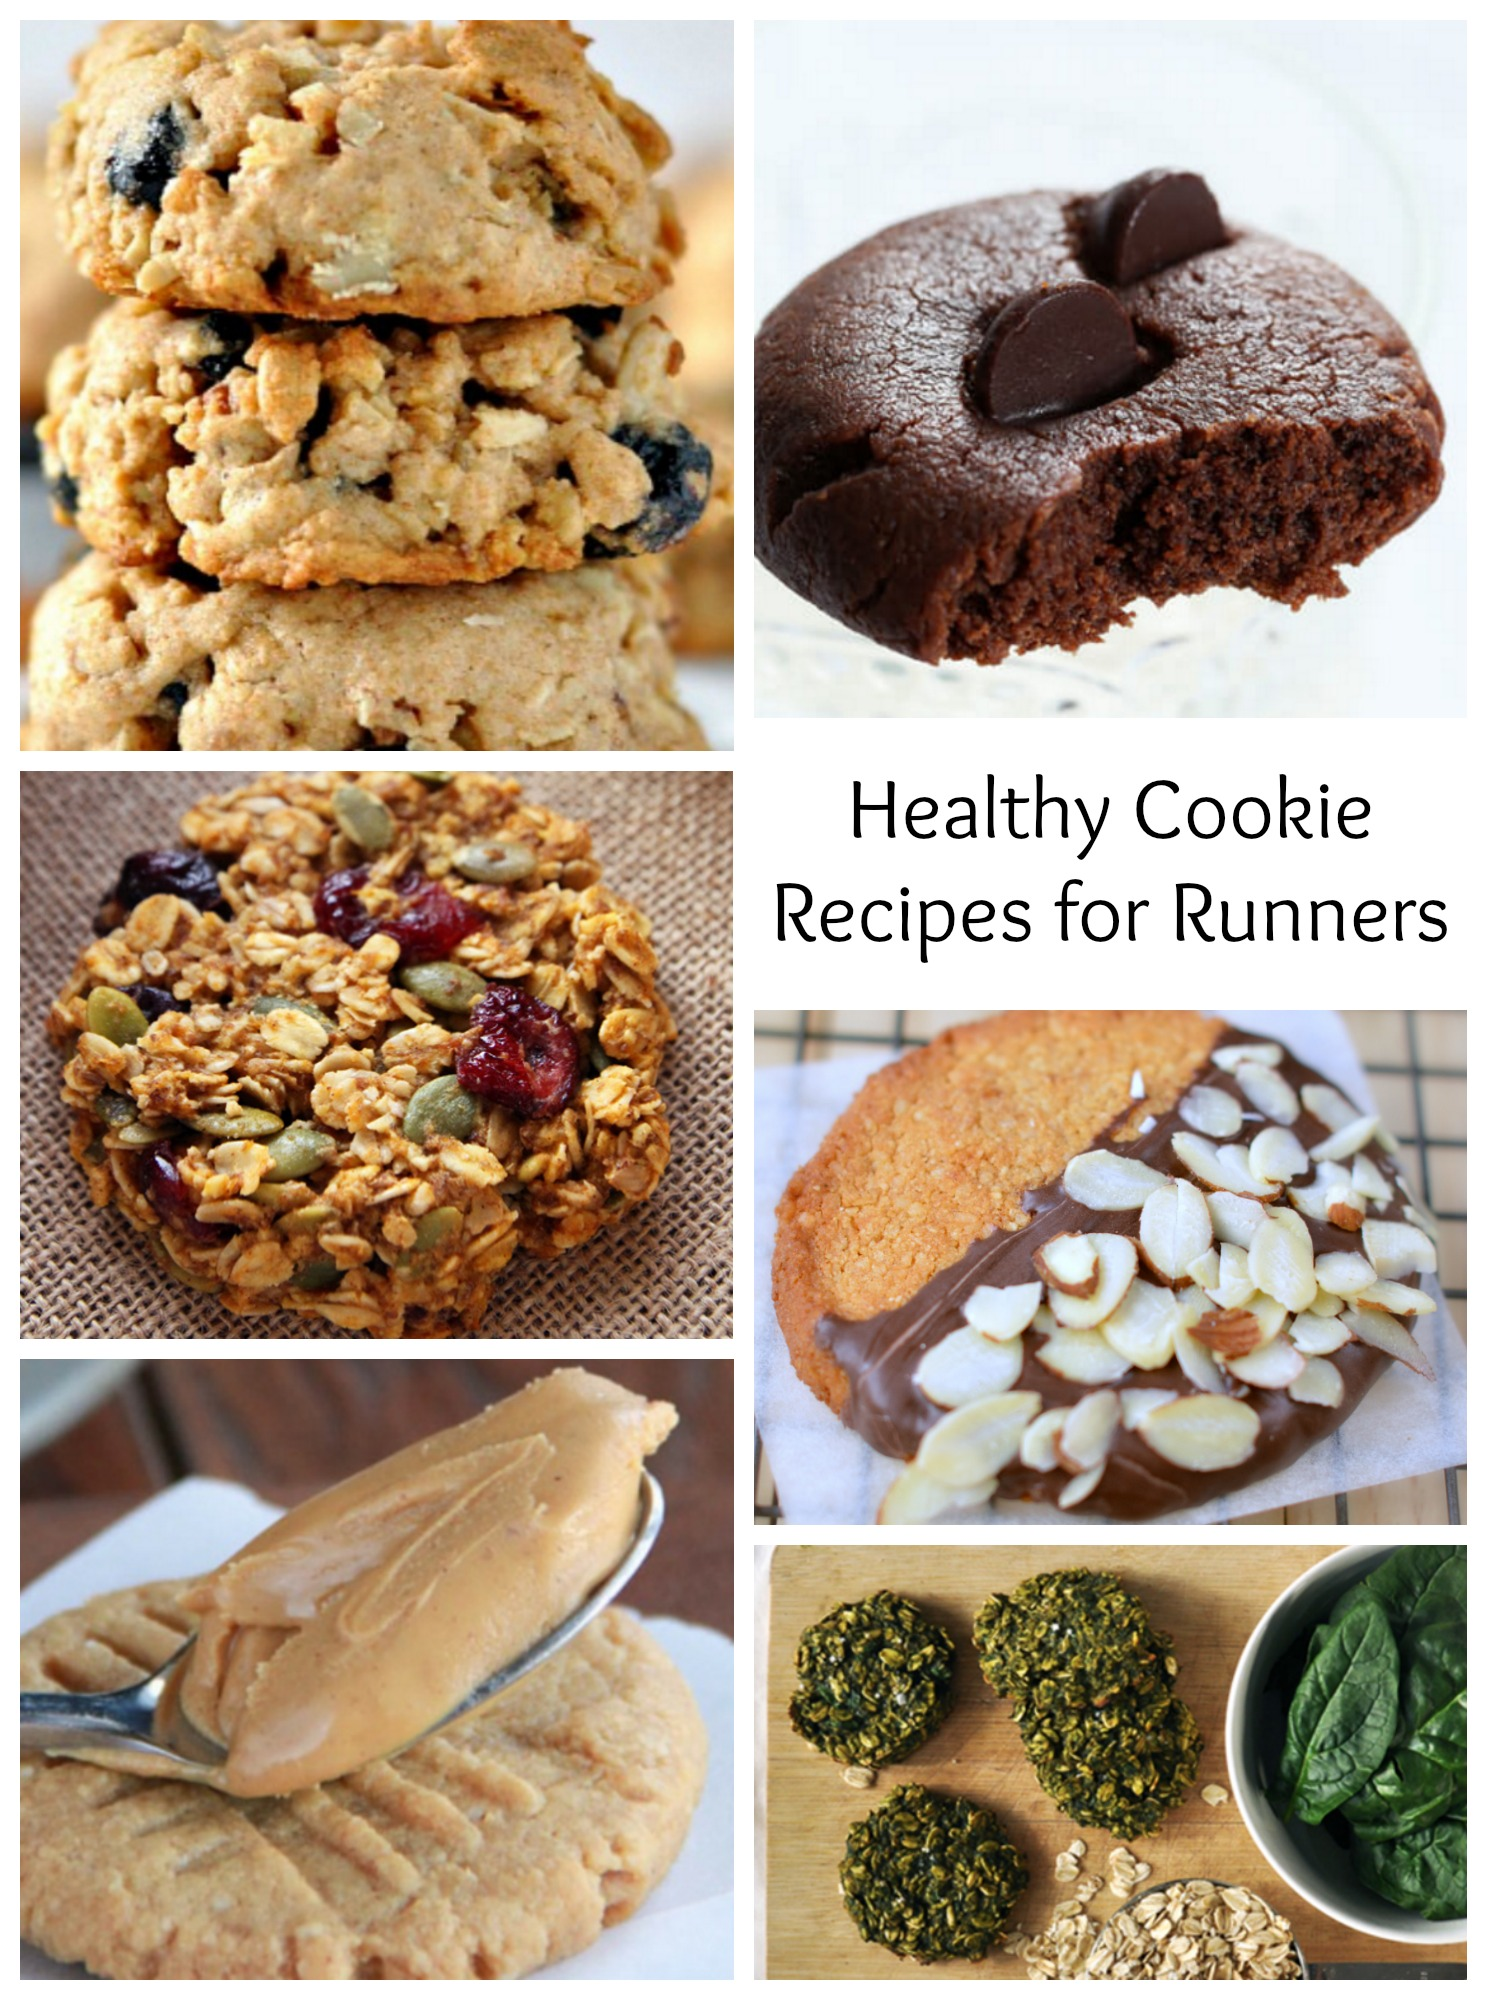 Healthy Cookie Snacks for Runners